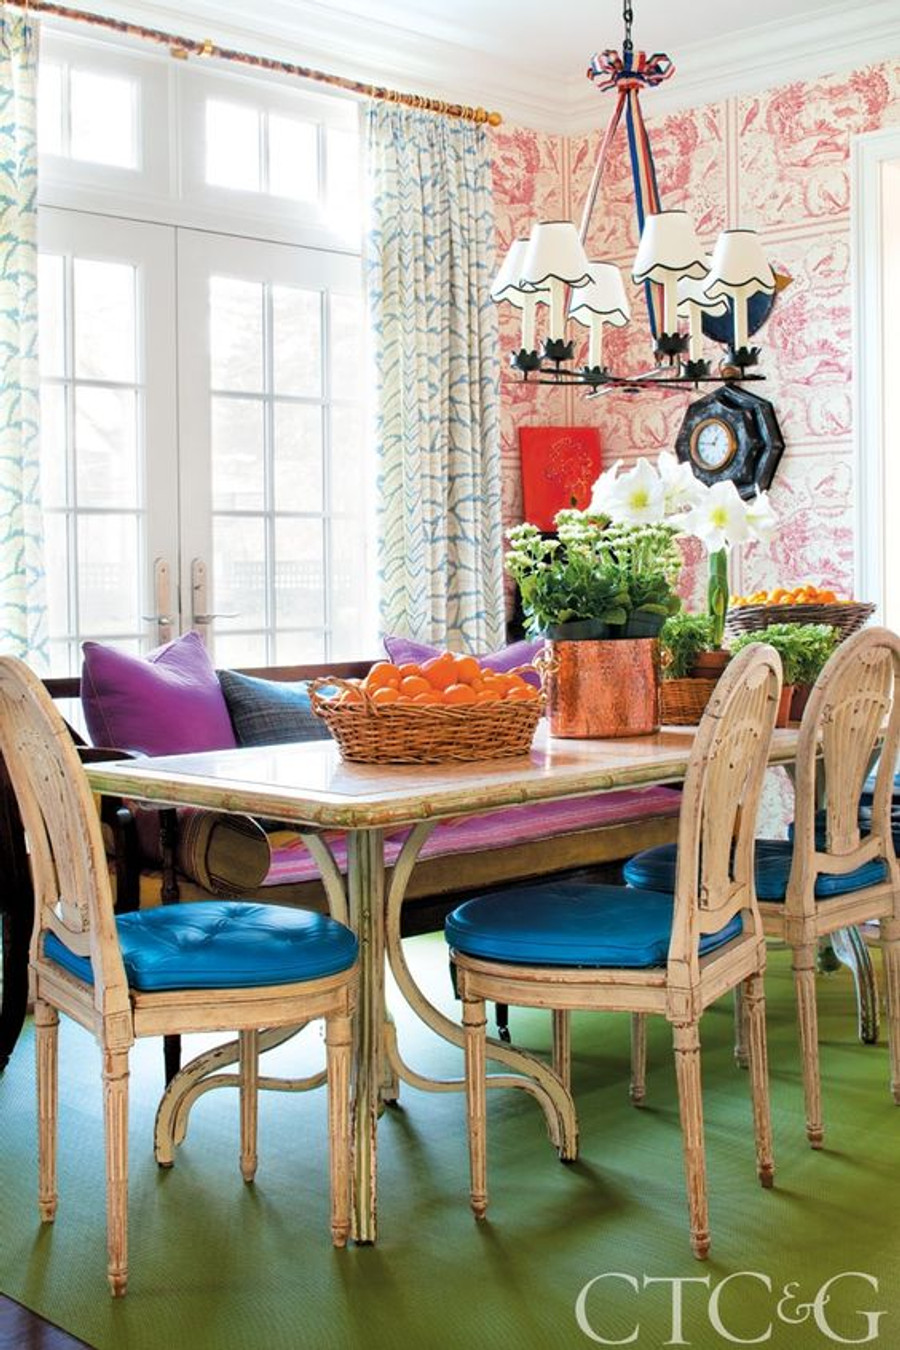 Dining Room Drapes In Brunschwig Fils Talavera Aqua Connecticut Cottages